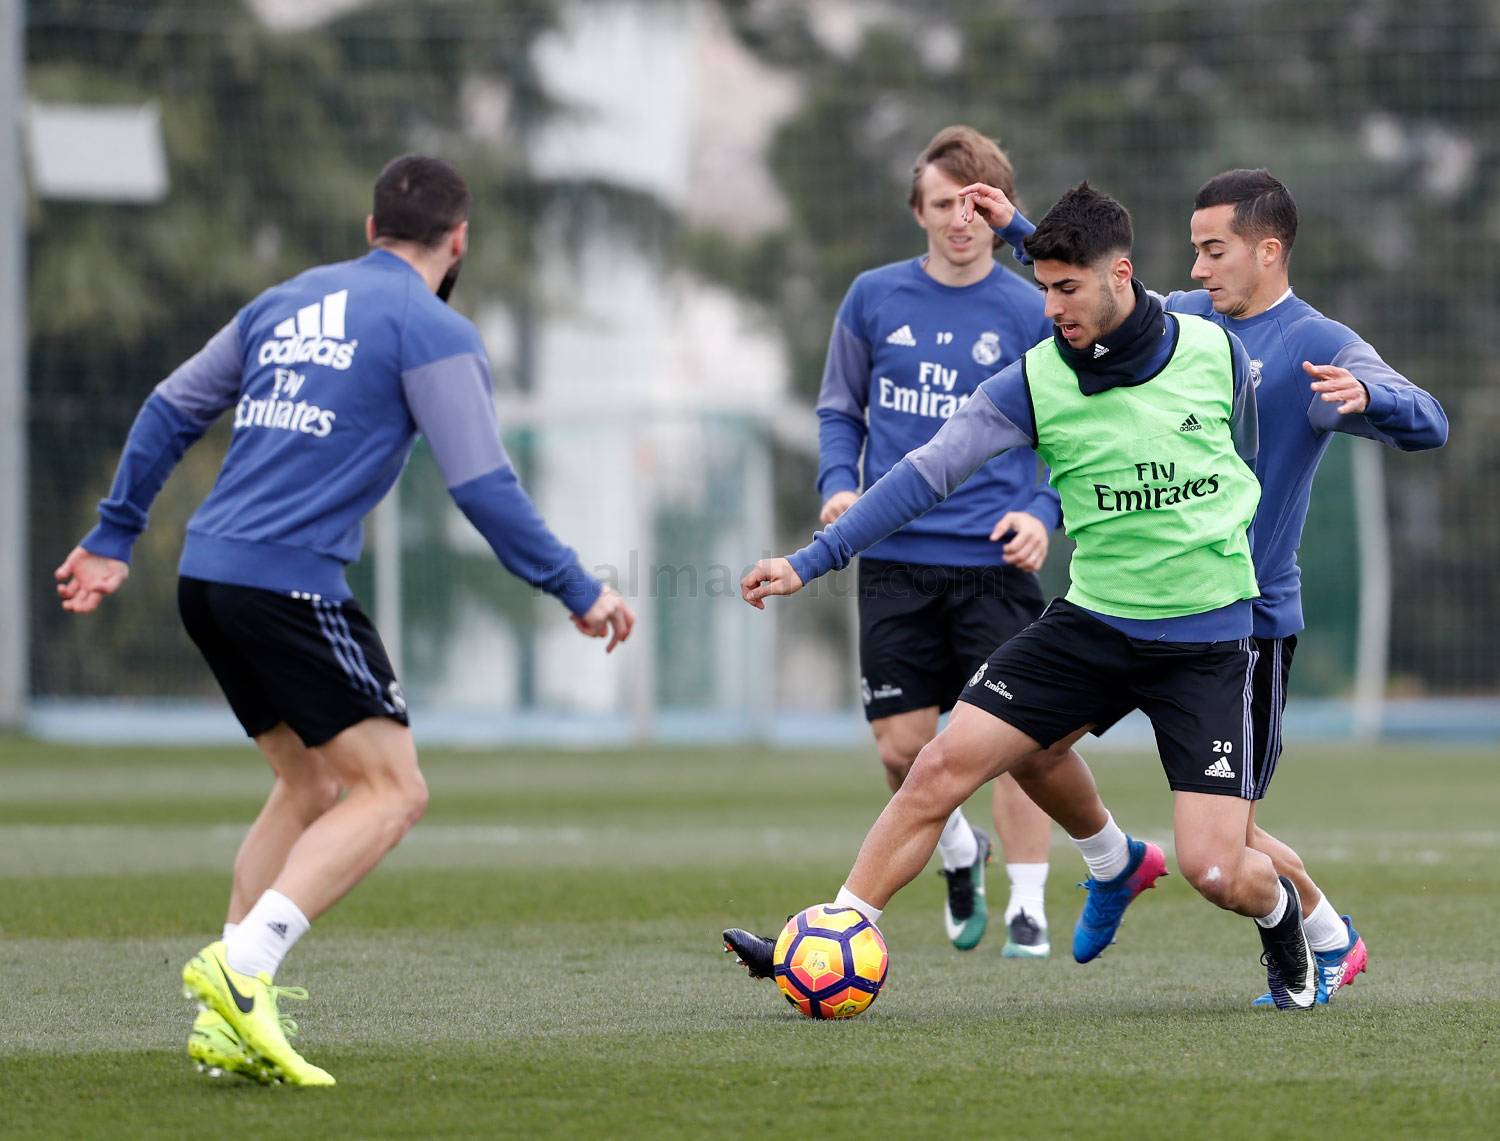 Real Madrid - Entrenamiento del Real Madrid - 03-03-2017